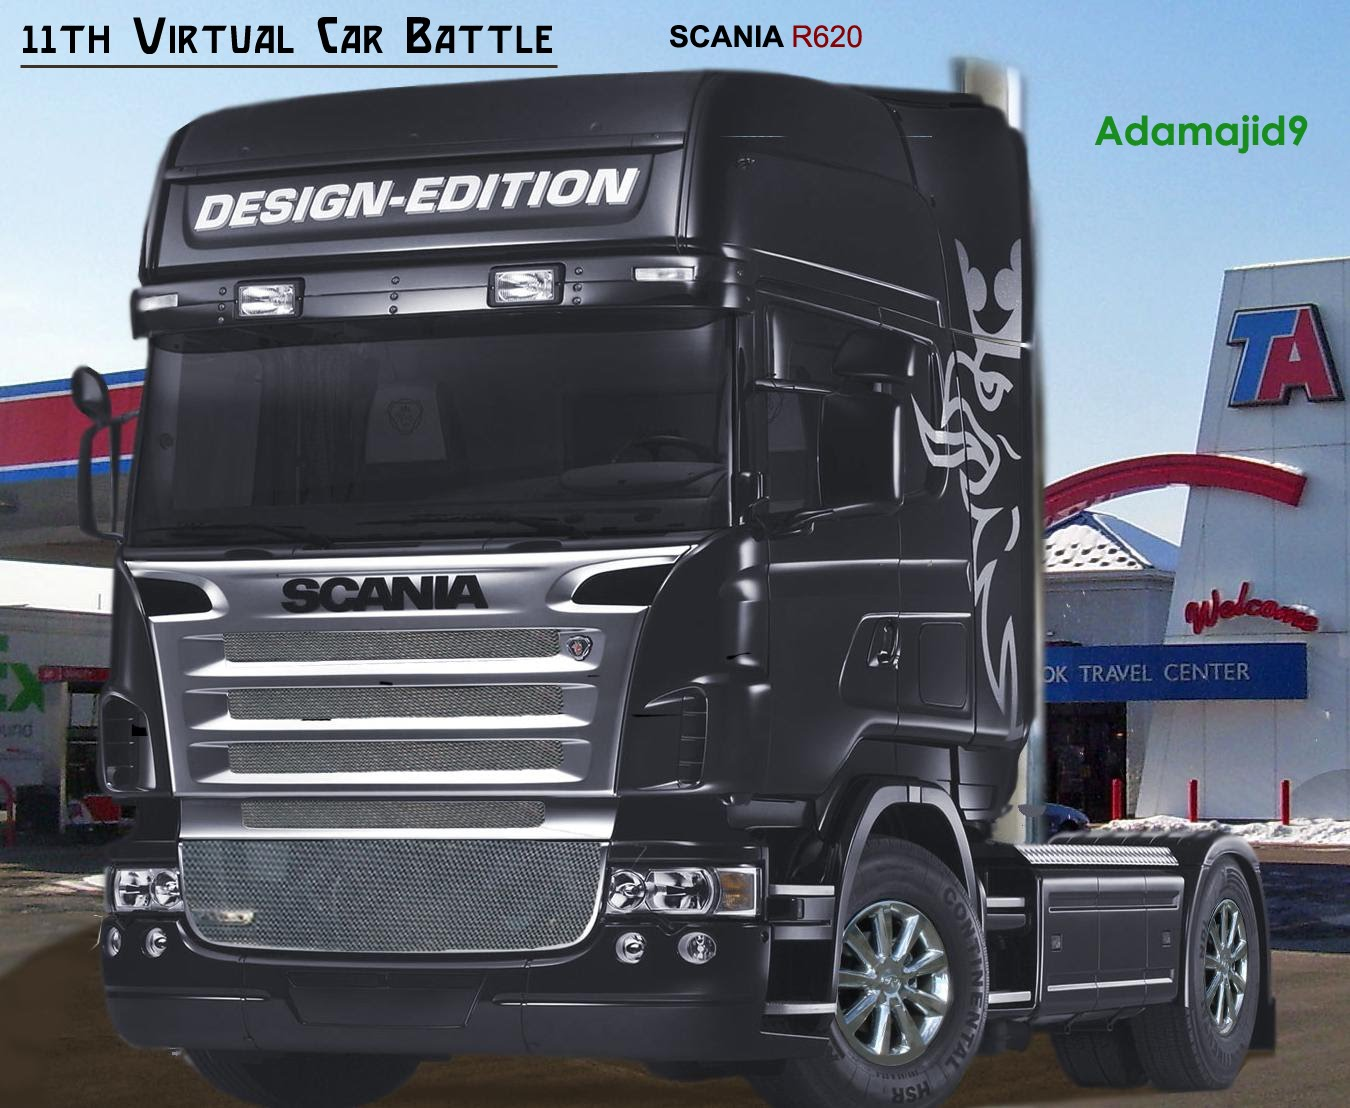 Virtual car tuning v2 game car games play free online game http www